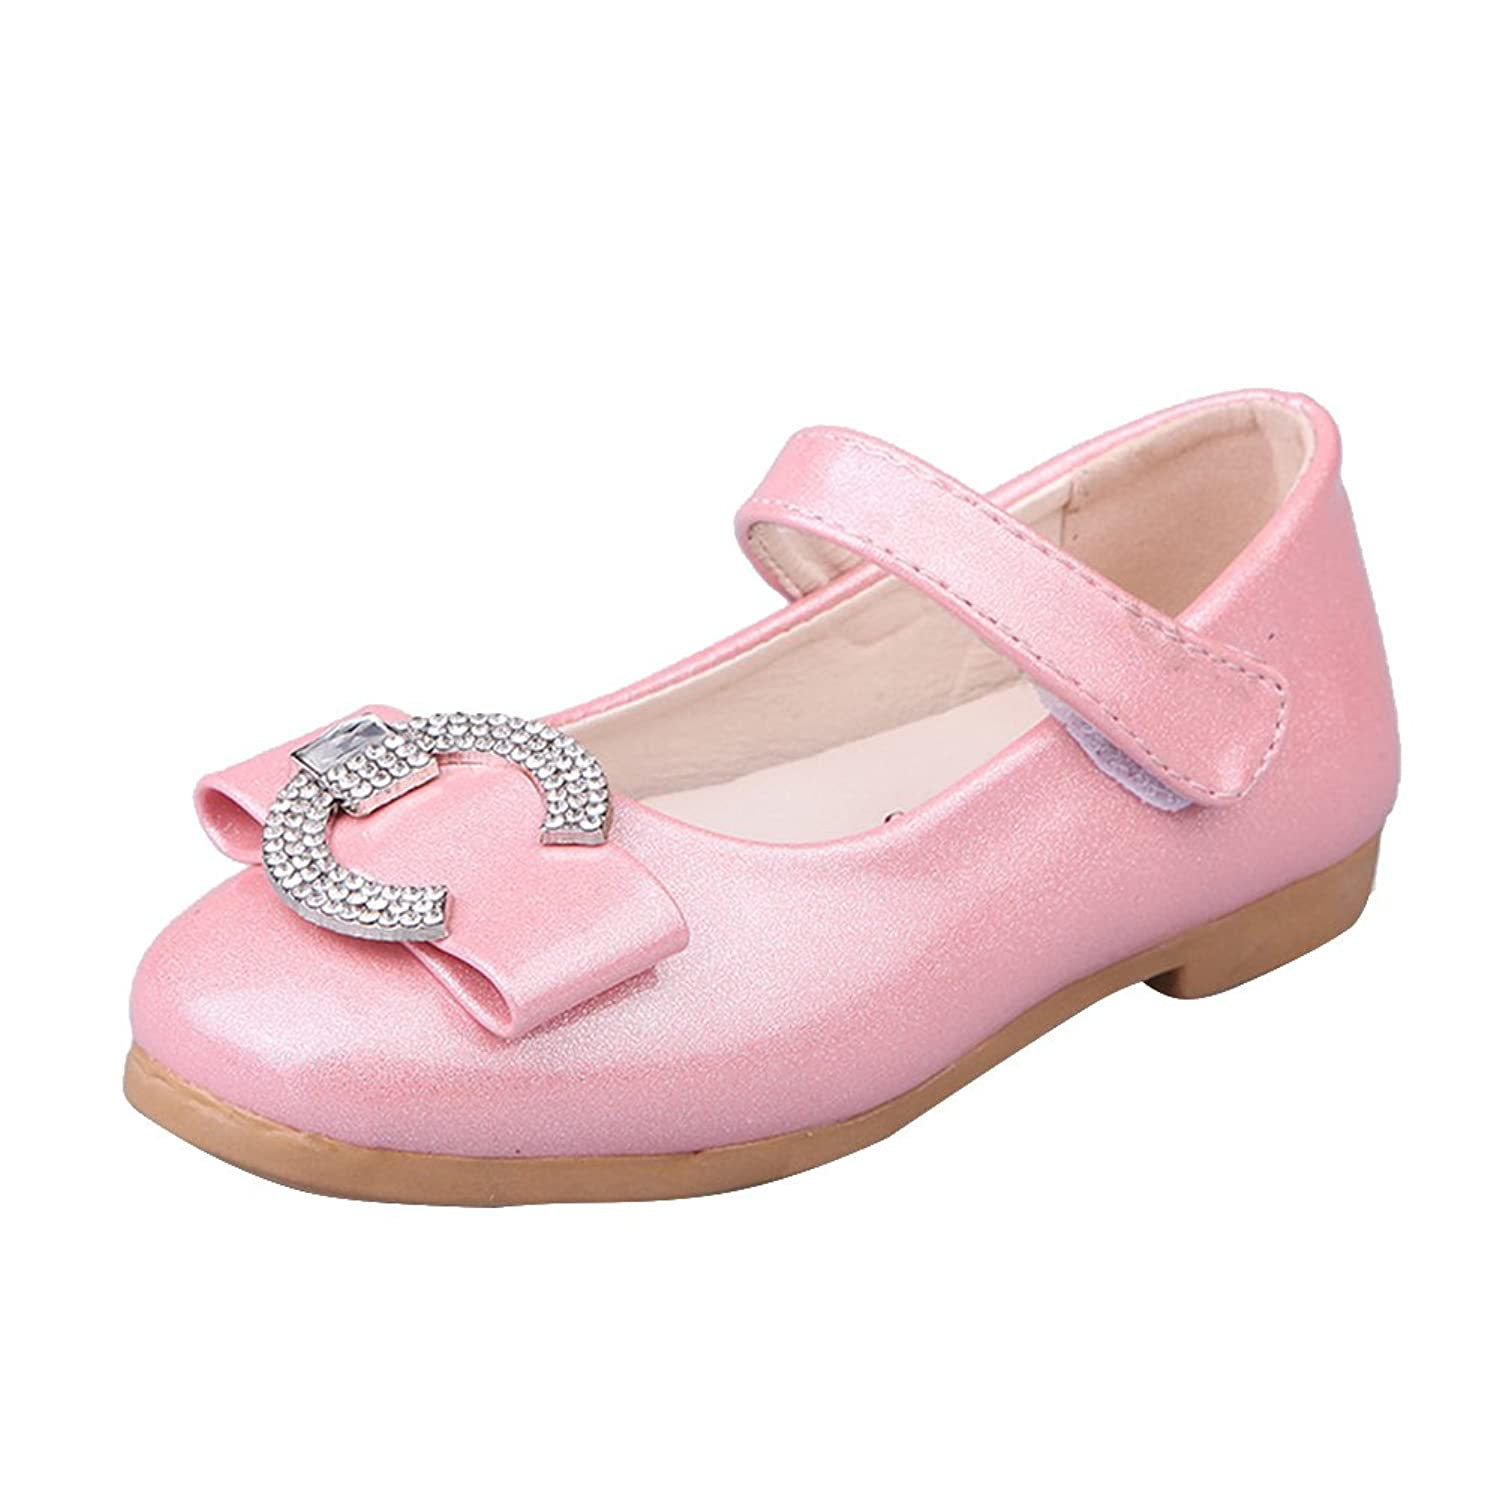 Amur Leopard Kids Girls Mary Jane Shoes Bowknot Metallic Color Dance Wedding Princess Shoes(Toddler/Little Kid) Pink 10.5M US Little Kid